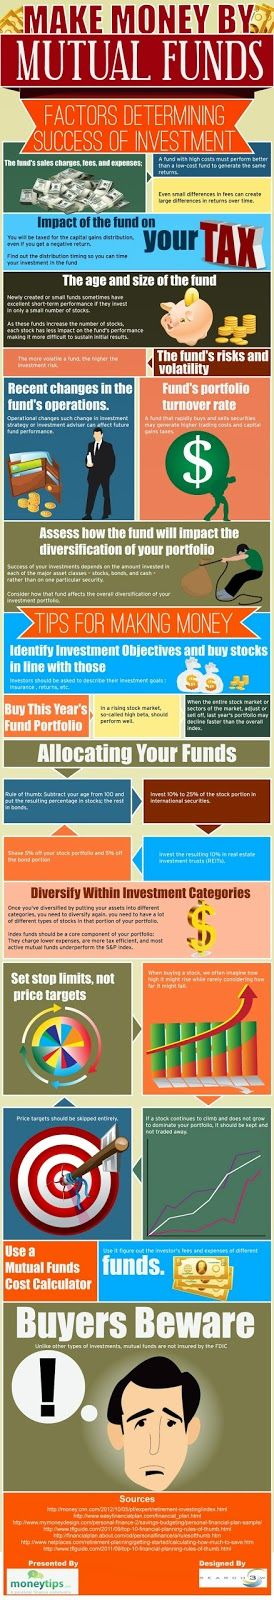 Moneytips has launched an Infographic with the big idea of highlighting the best ways to make money by investing into mutual funds. Mutual fund is an investment of choice for many but very few are aware of the factors and thumb rules that guide seasoned investors. This infographic is an attempt to impart knowledge about the basic know-how of investing in mutual funds.